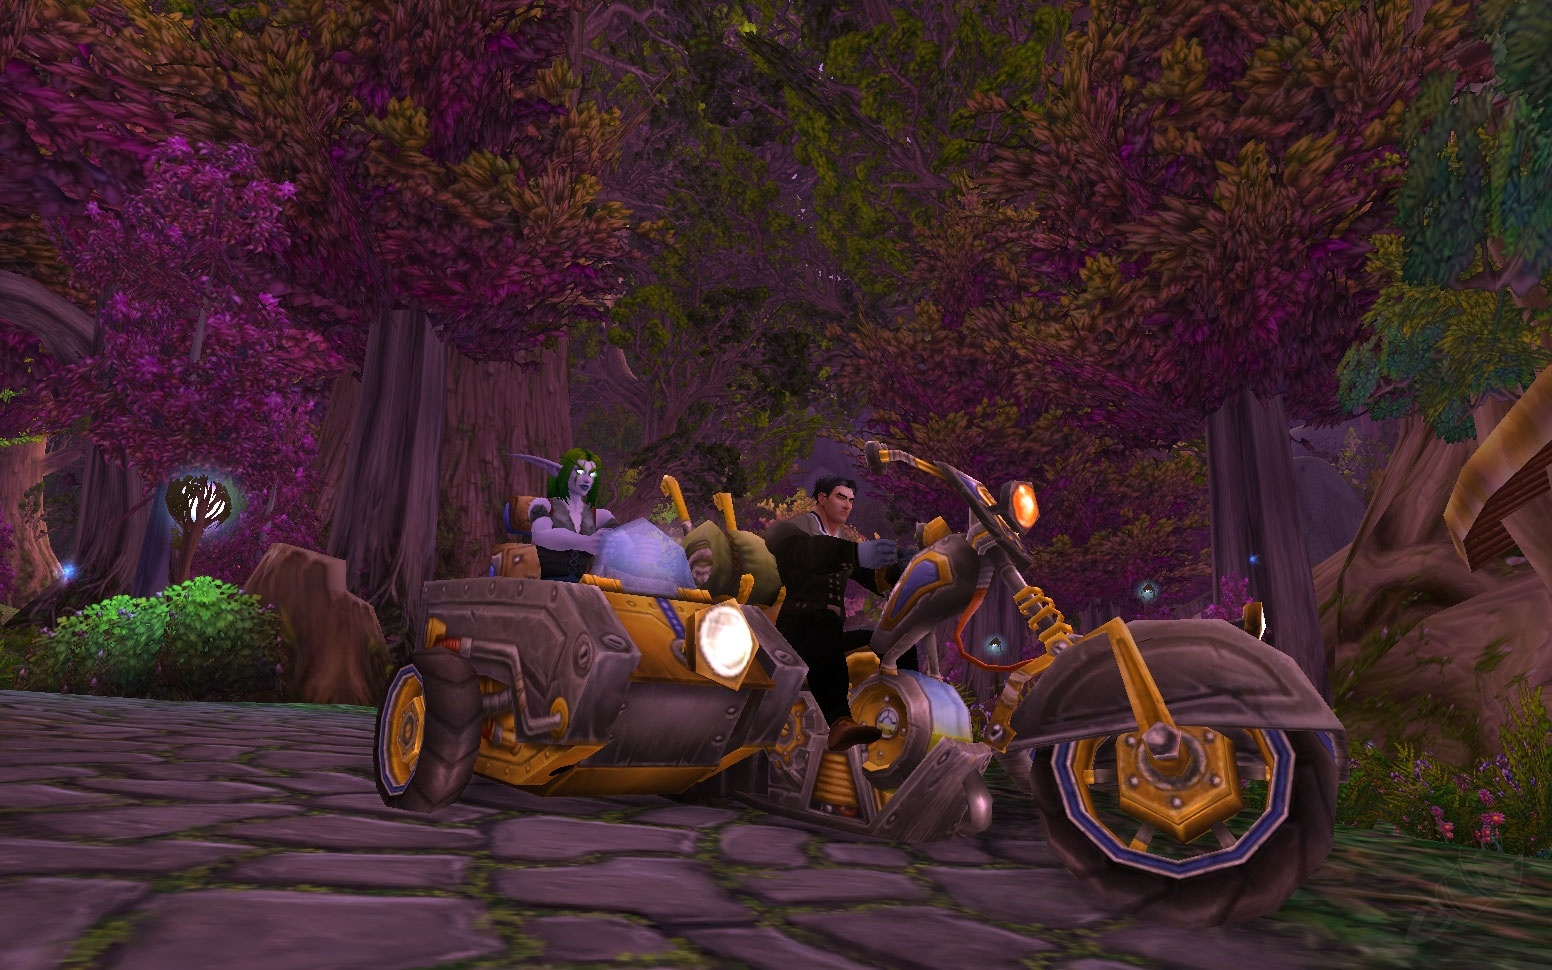 Mounts world of warcraft sexual image